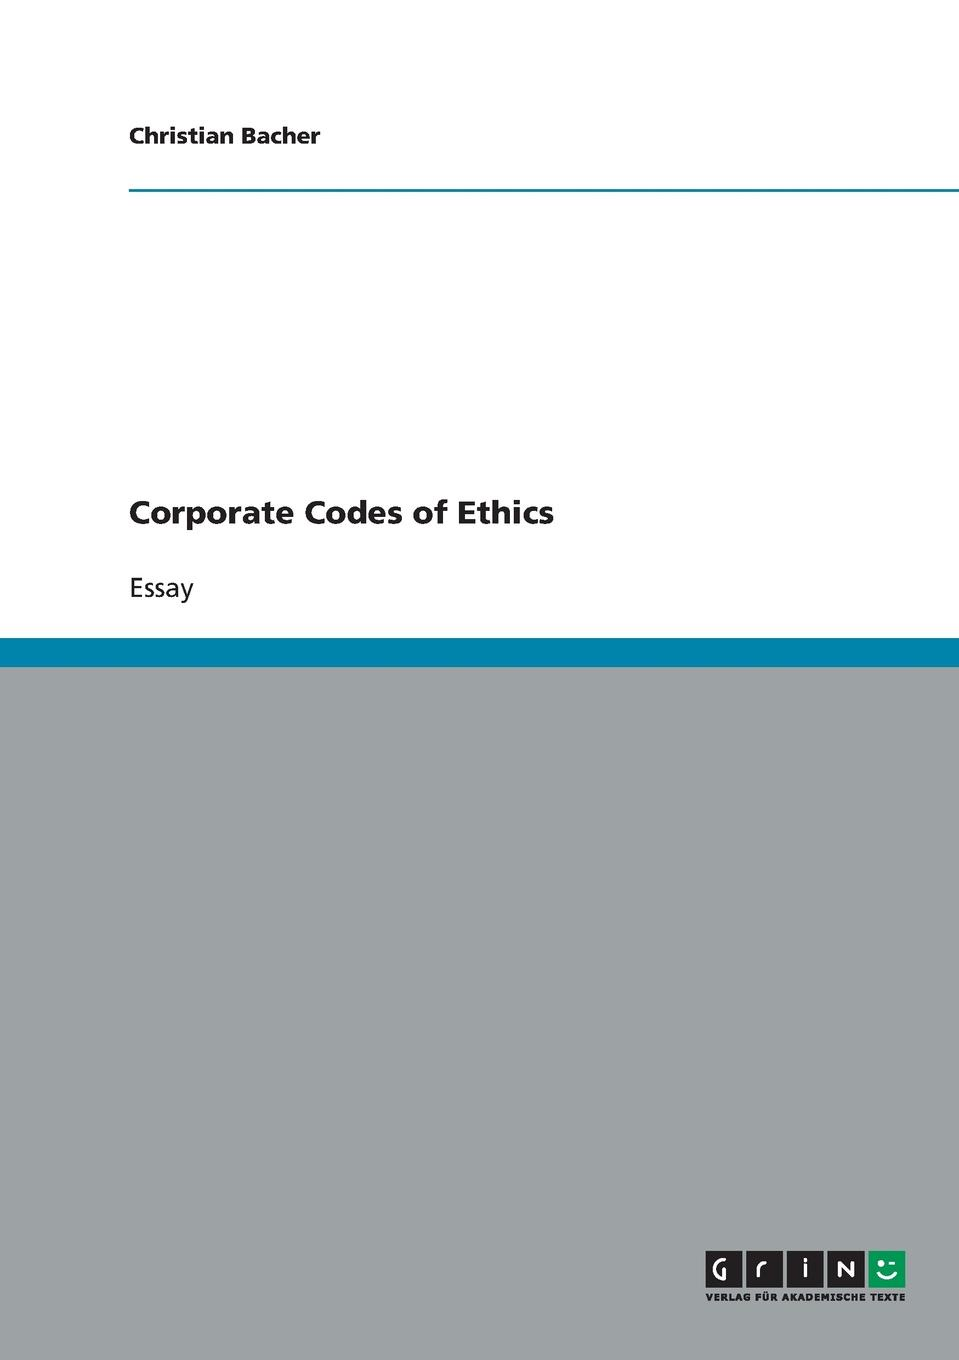 Christian Bacher Corporate Codes of Ethics food ethics and society